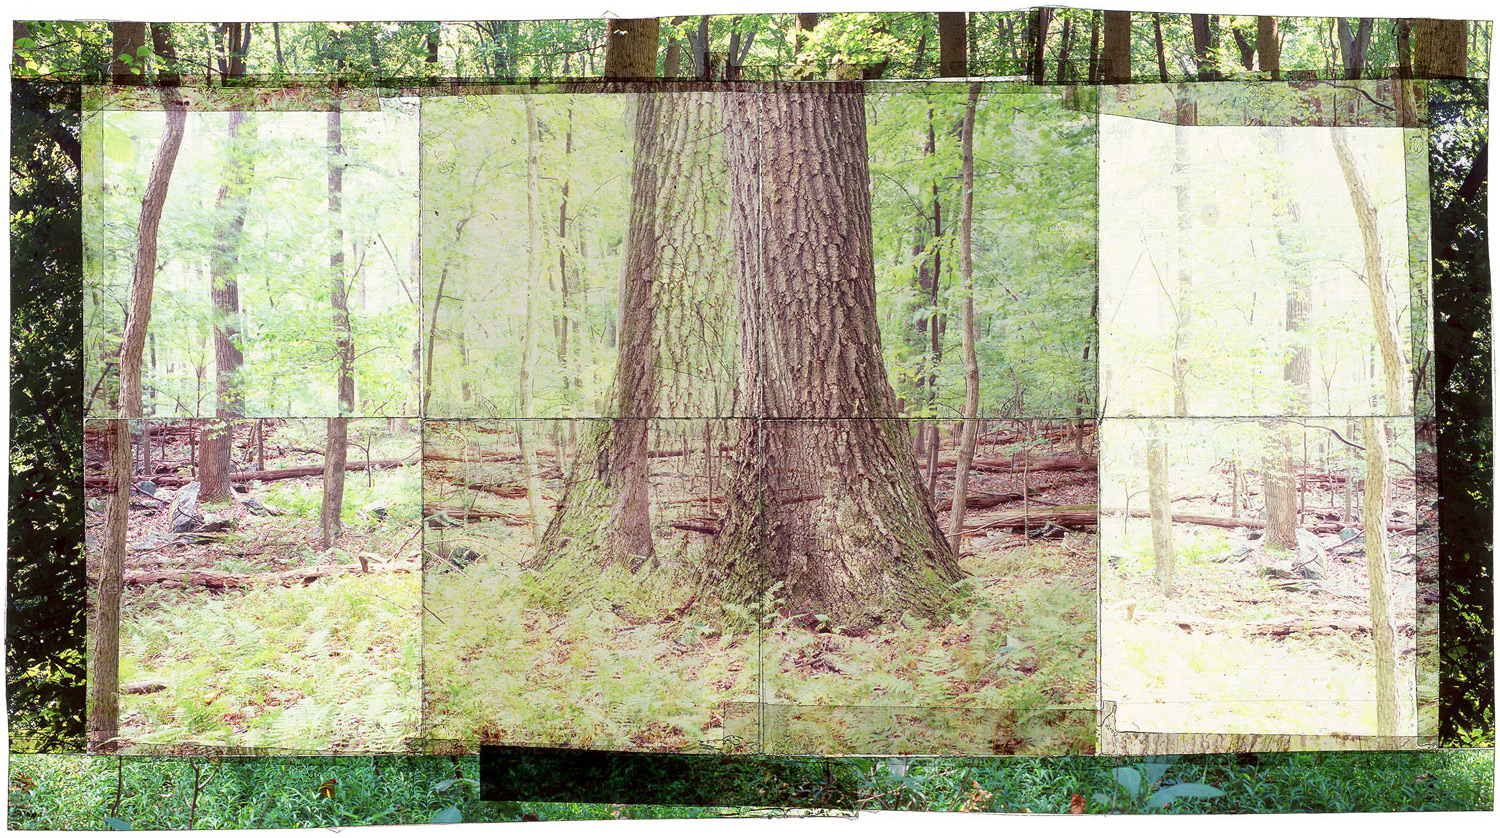 """GAMBRILL SP, 3   • 30""""x 17"""" • GICLEE PRINT FROM TRANSPARENCY FILM COMPOSITION"""